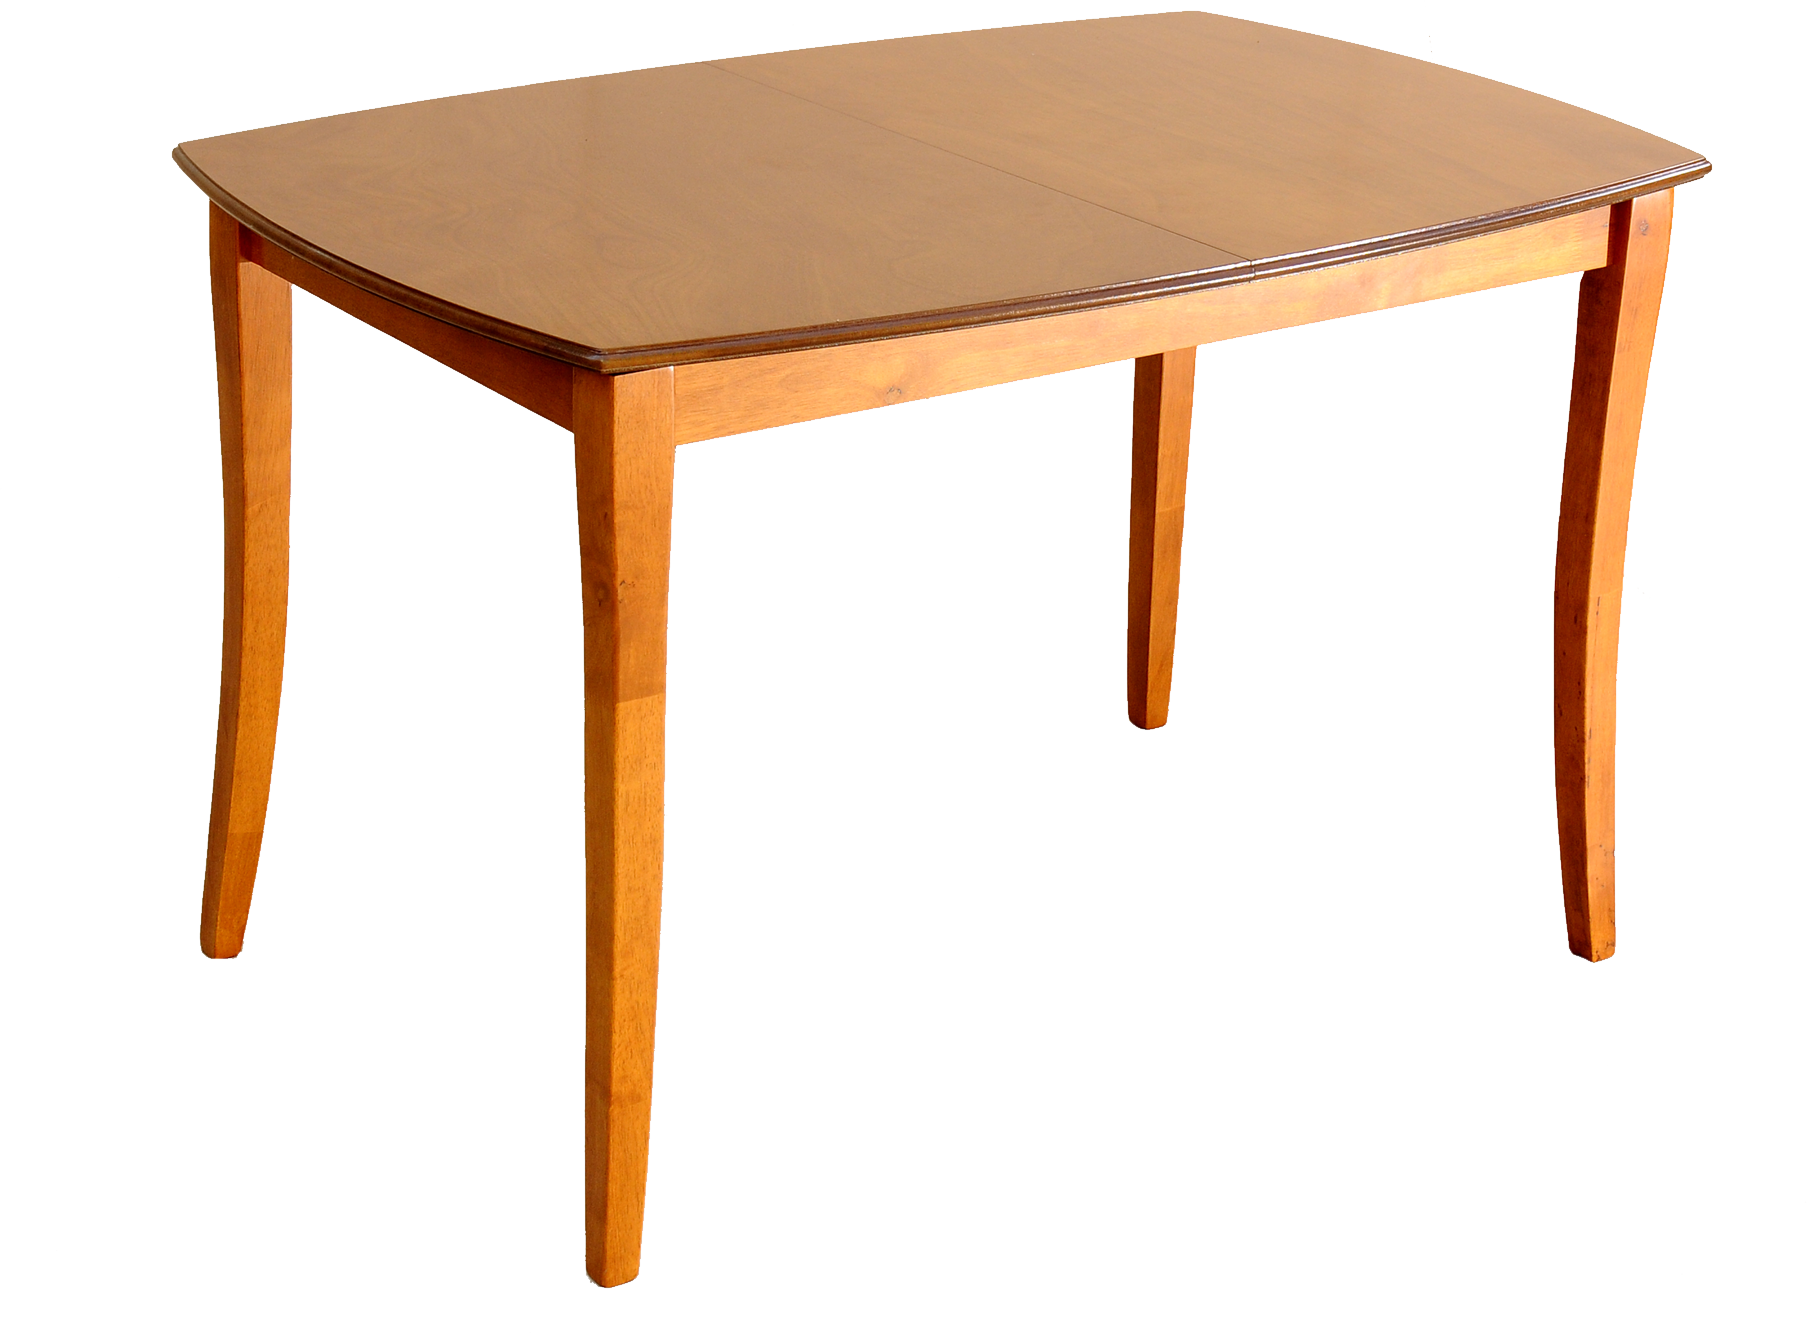 1807x1333 Best Table Clipart